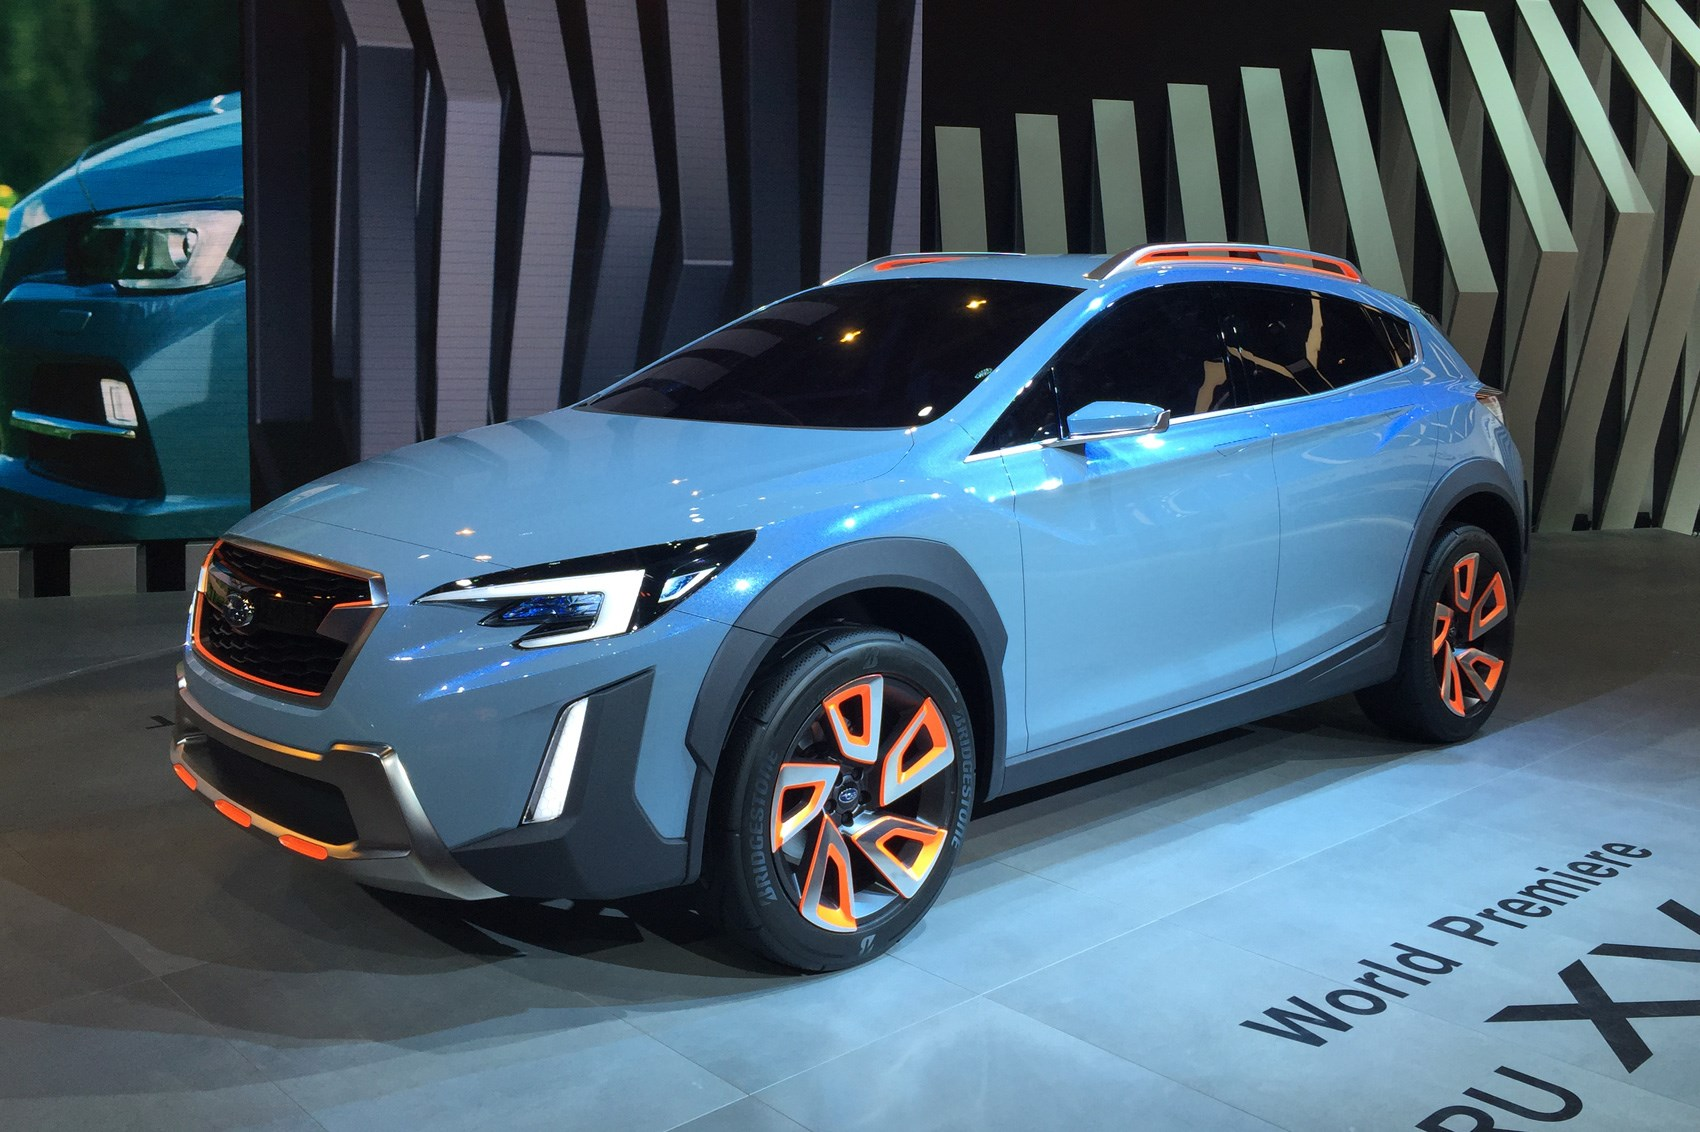 Subaru Xv Concept Revealed At 2016 Geneva Motor Show By